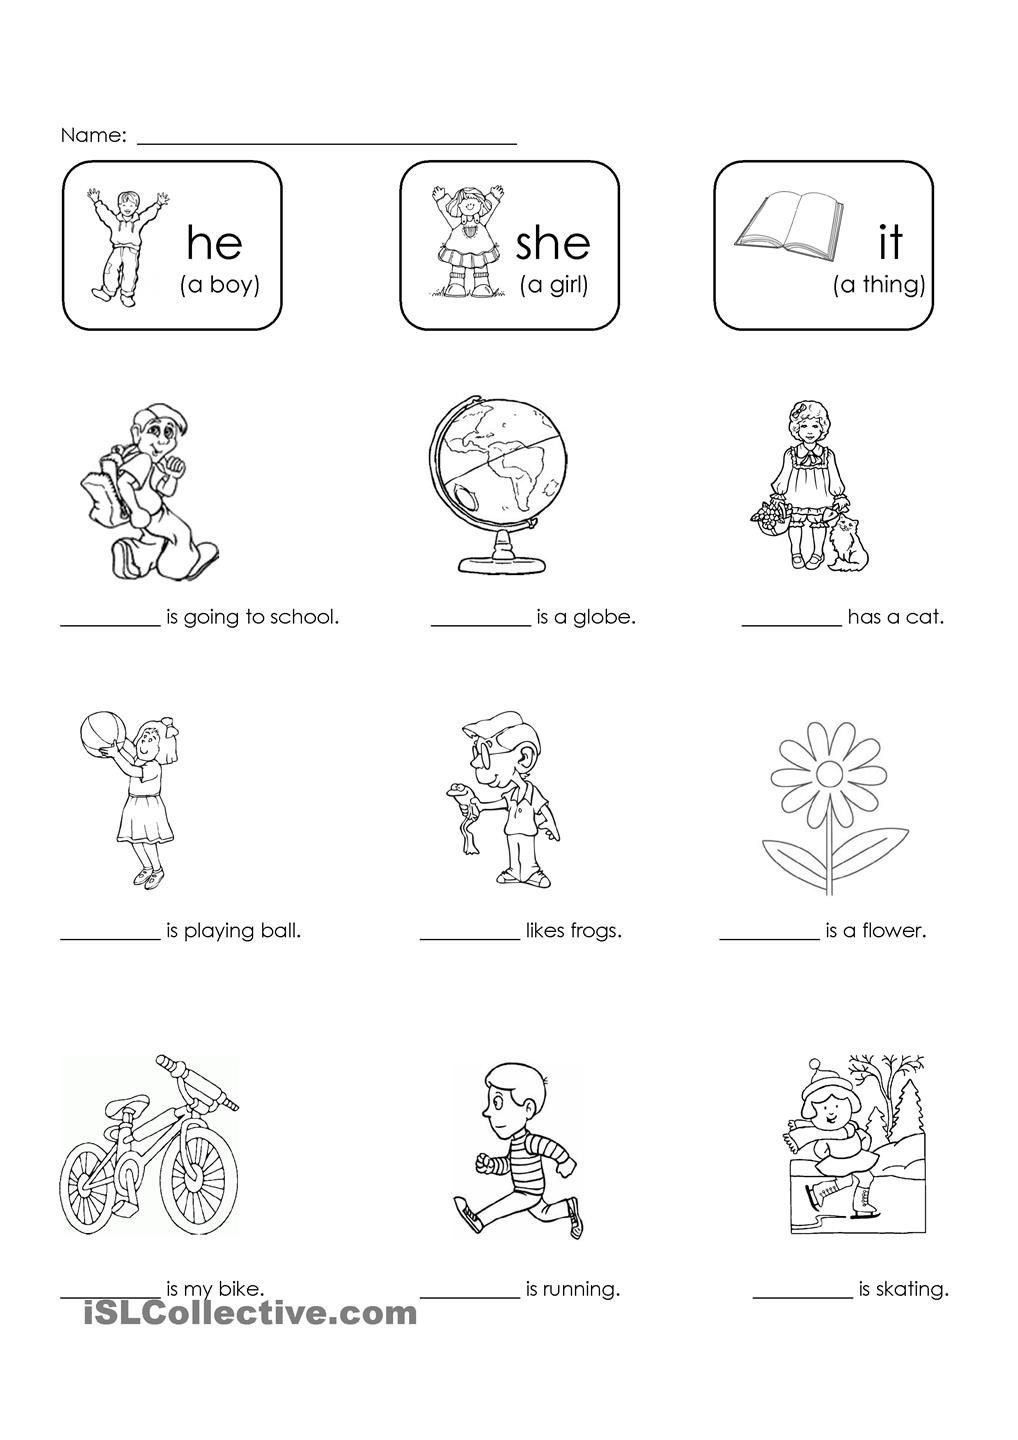 Worksheet Primary School English Worksheets english and worksheets on pinterest students choose the correct pronoun he she or it to fill in blank correctly personal pronouns spelling writing beginner elementary